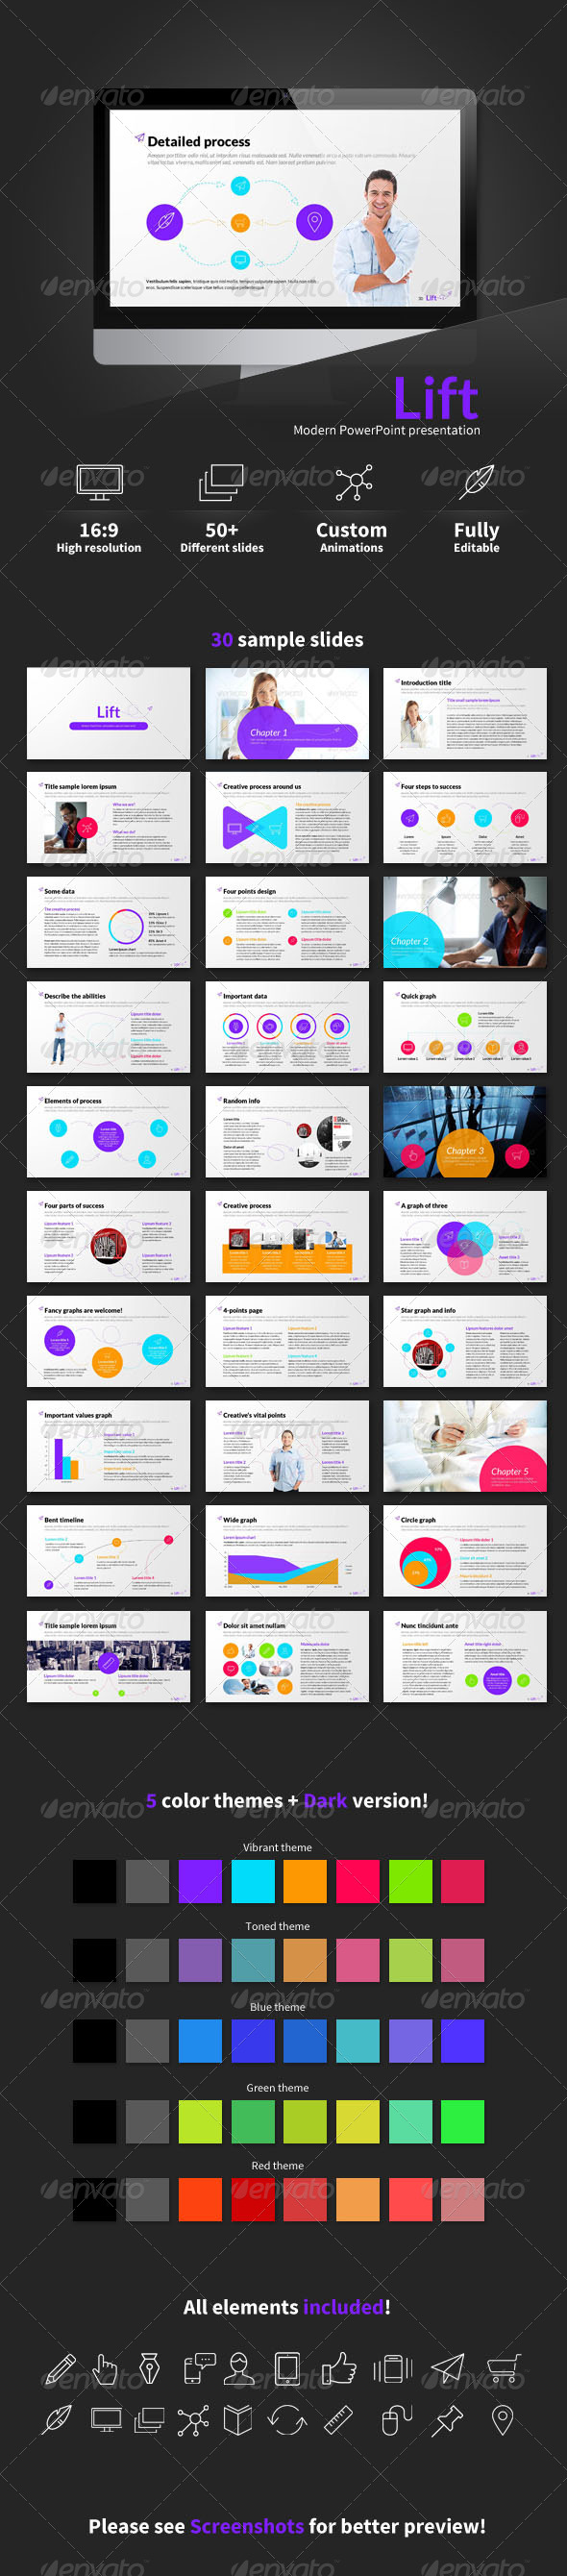 GraphicRiver Lift PowerPoint presentation 6910621